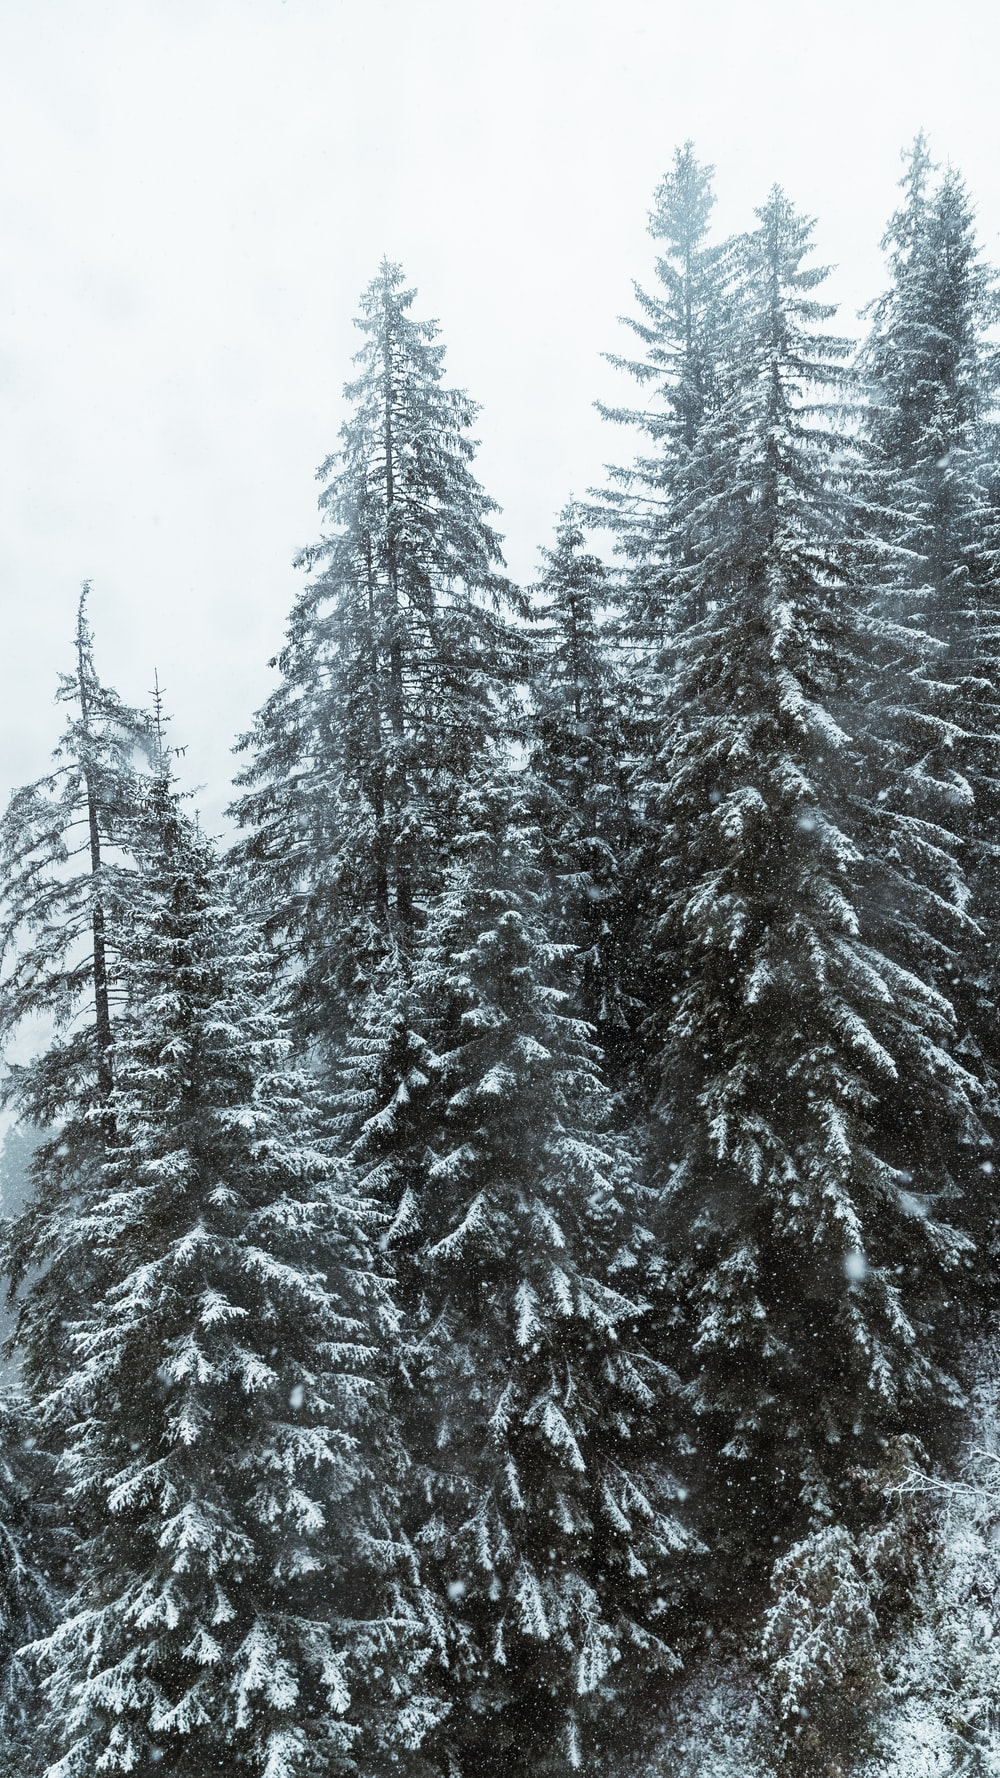 pinetrees covered with snow